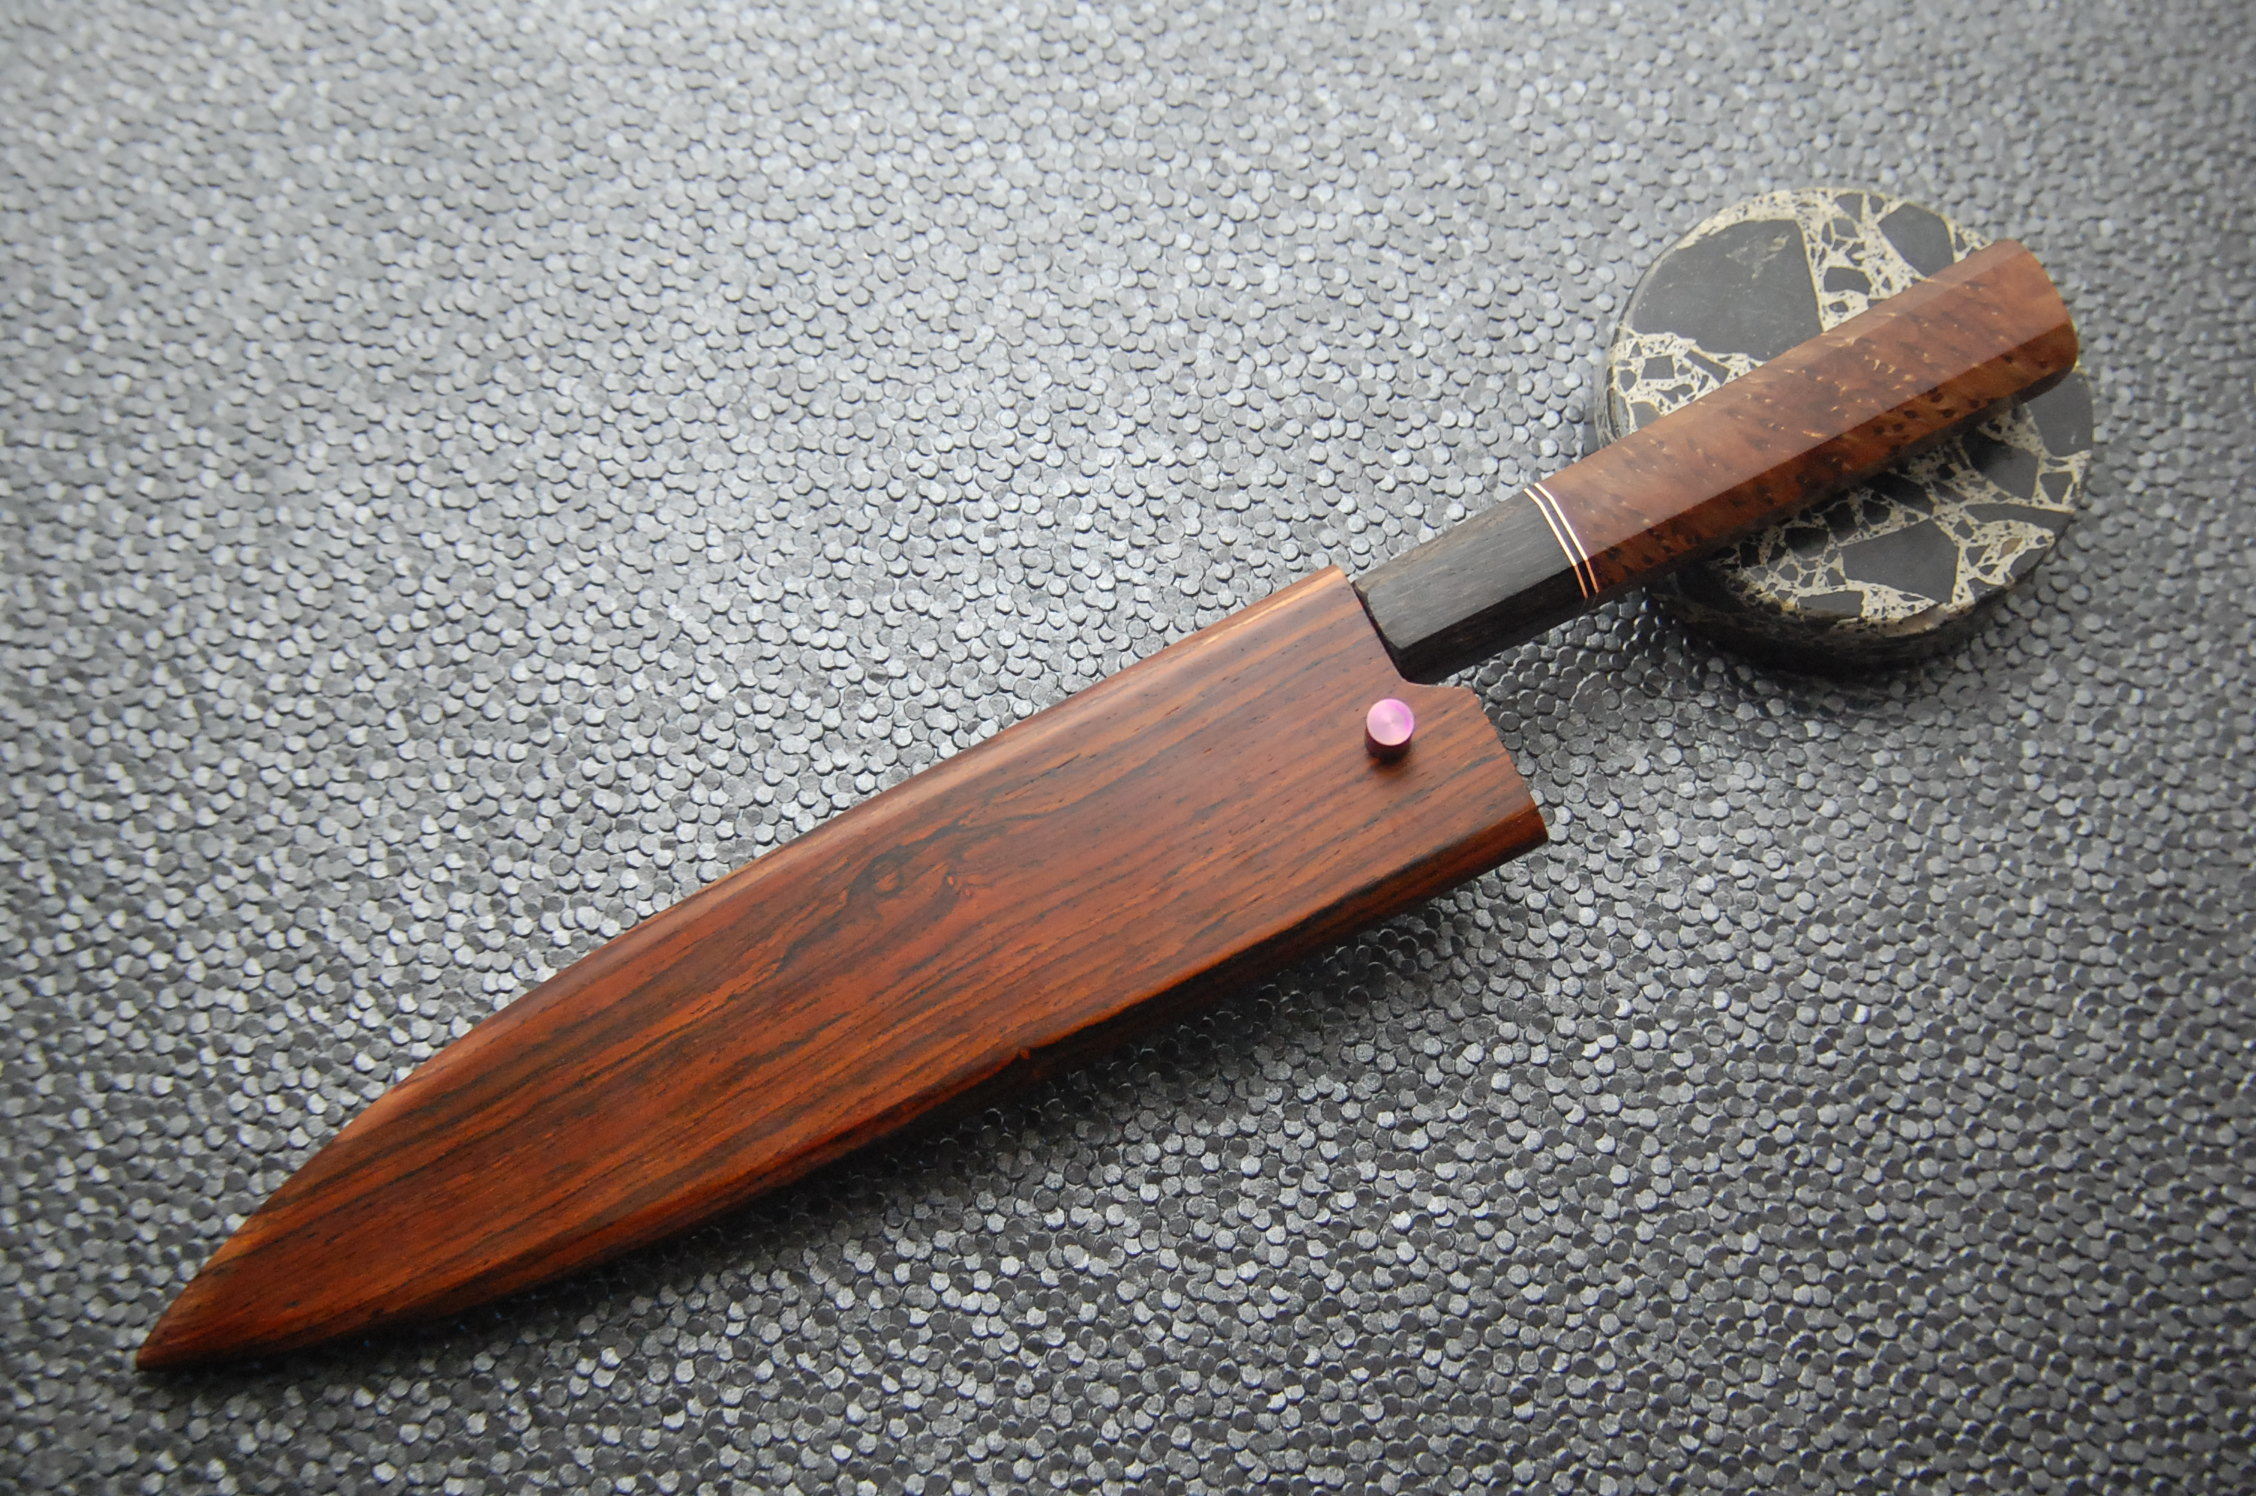 The saya is cocobolo with a wenge liner to match the handle.